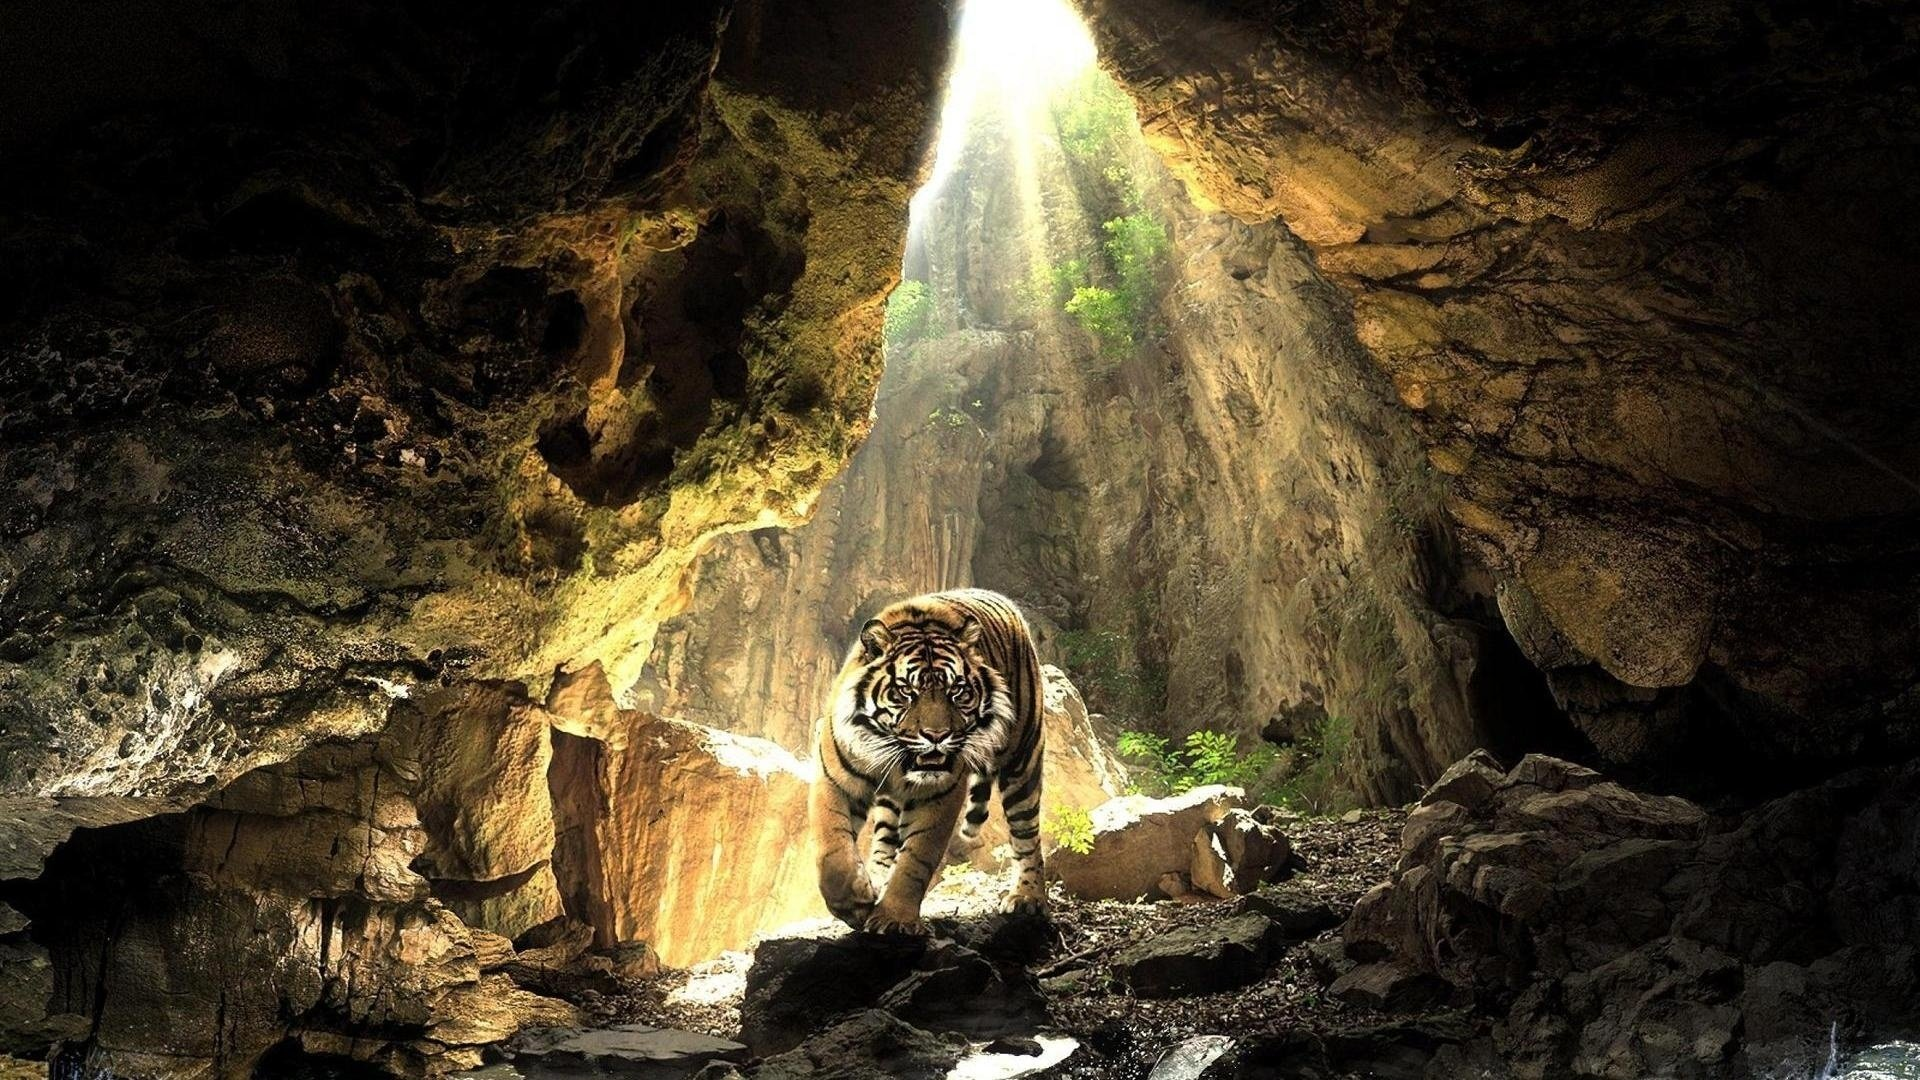 1185 Tiger HD Wallpapers   Backgrounds - Wallpaper Abyss